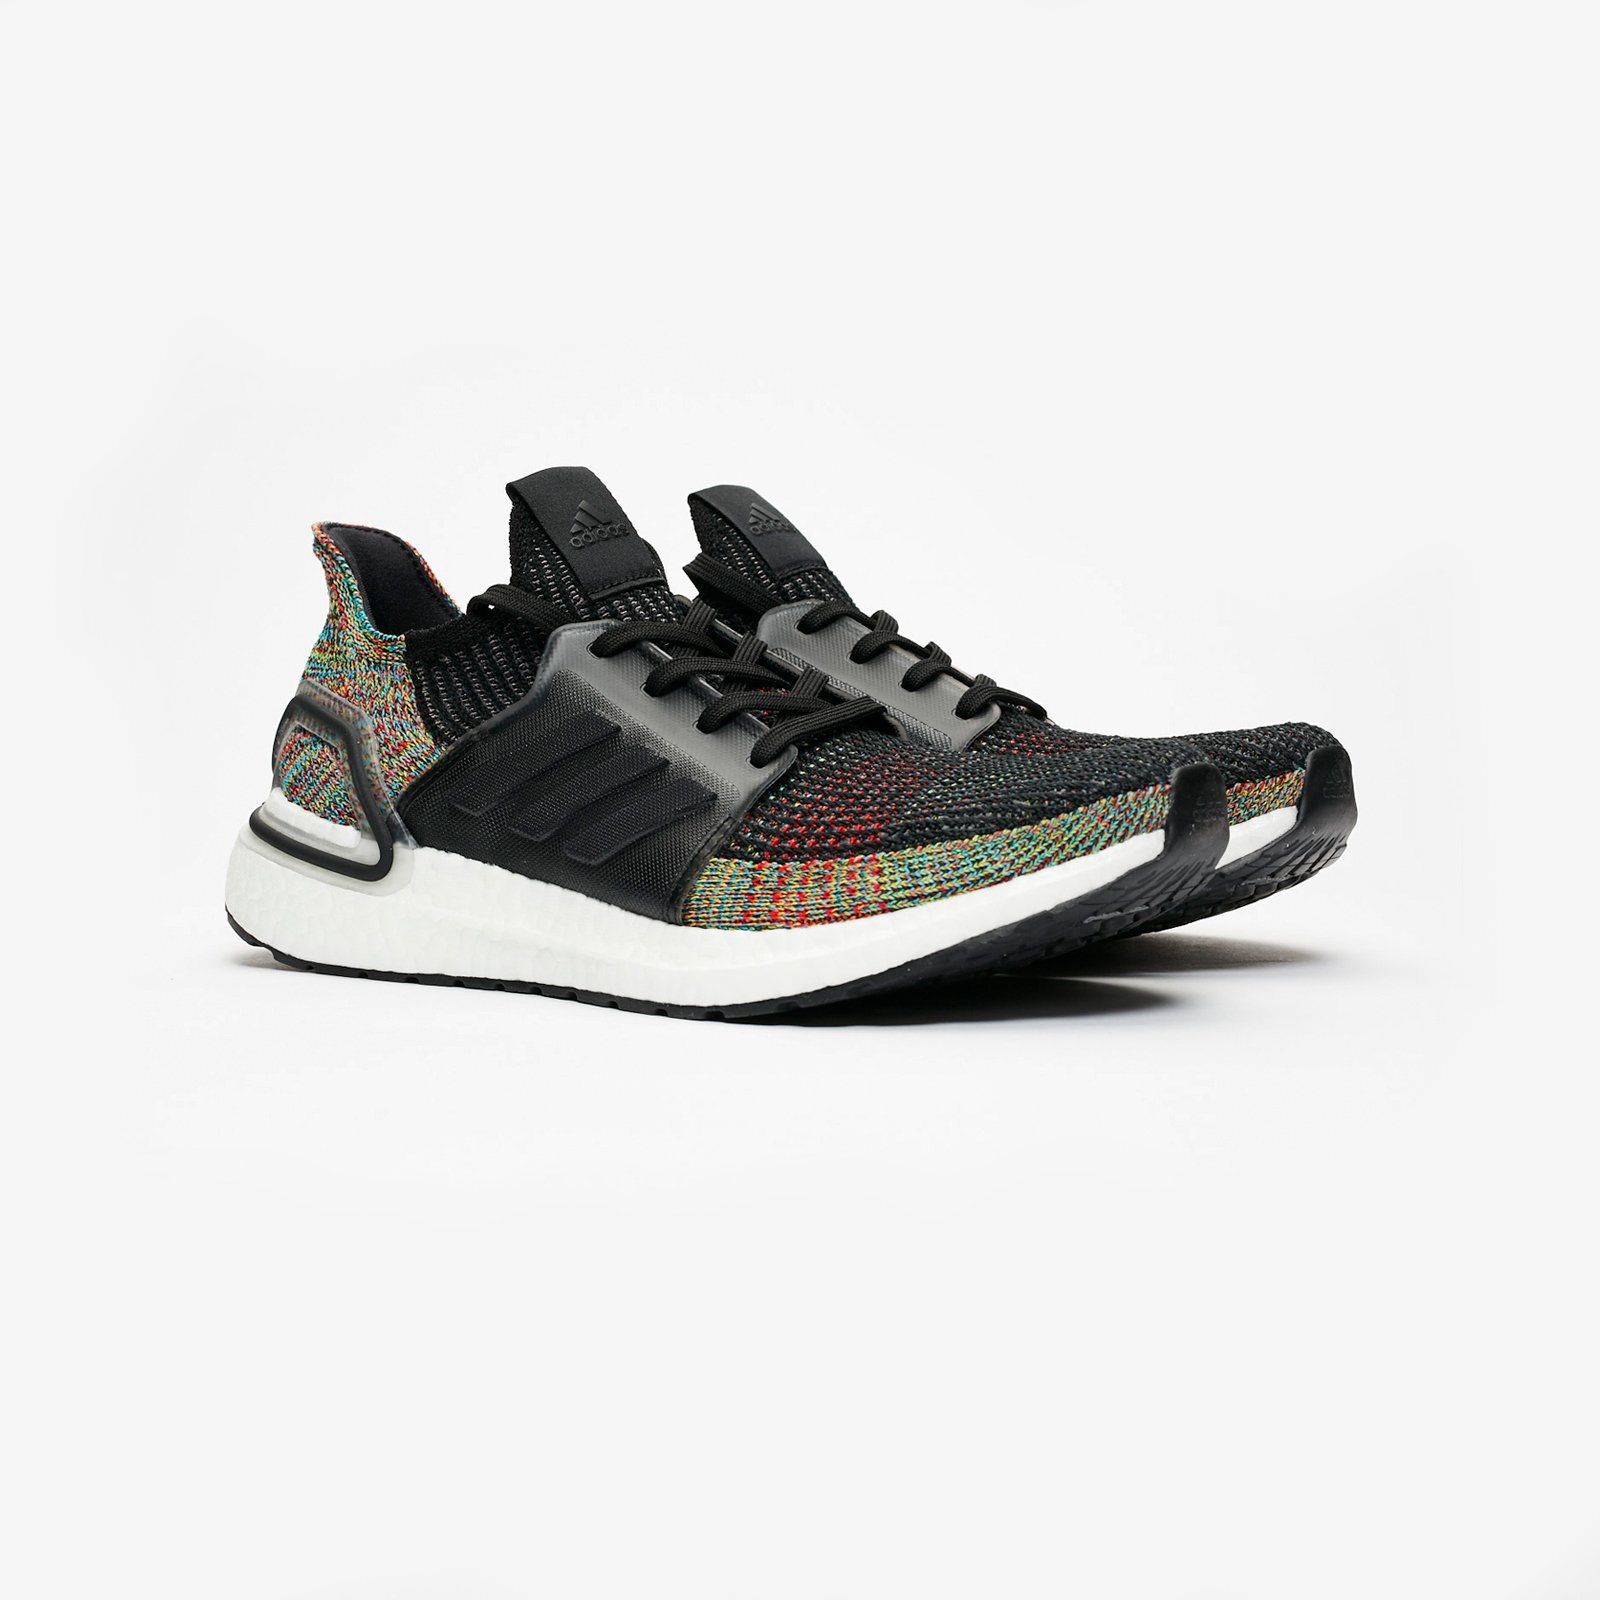 Adidas Originals Ultraboost 19 in Grey//Core Black B37706 Free Shipping